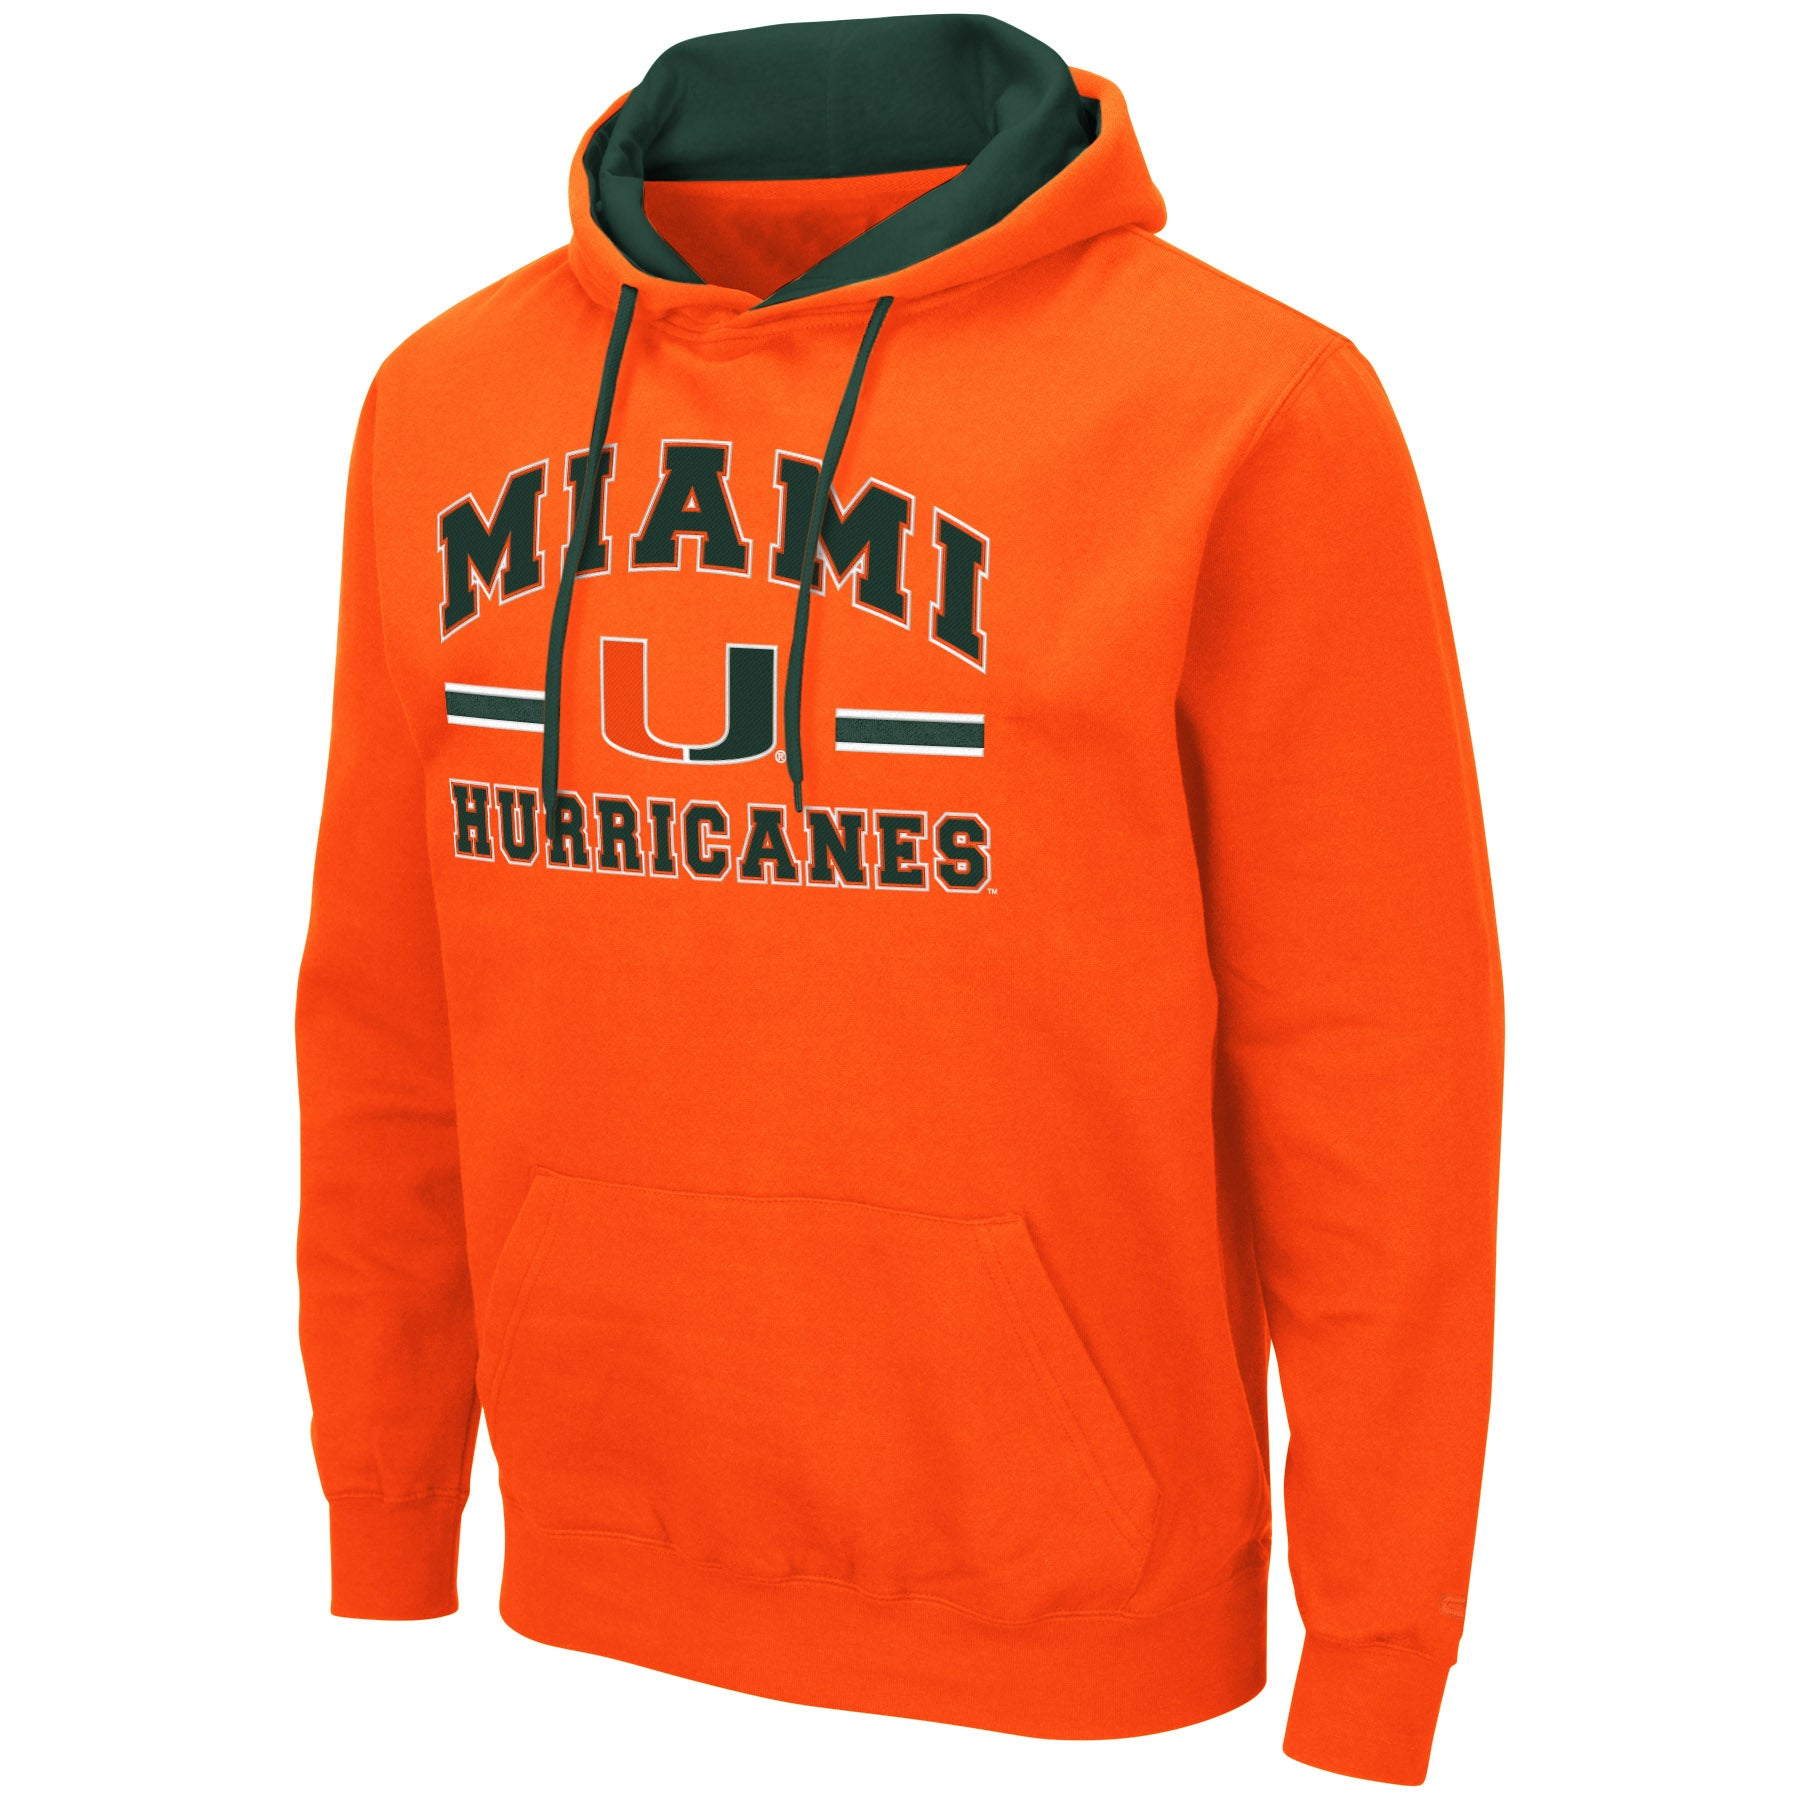 University of Miami Hurricanes Hoodie Pullover Sweatshirt